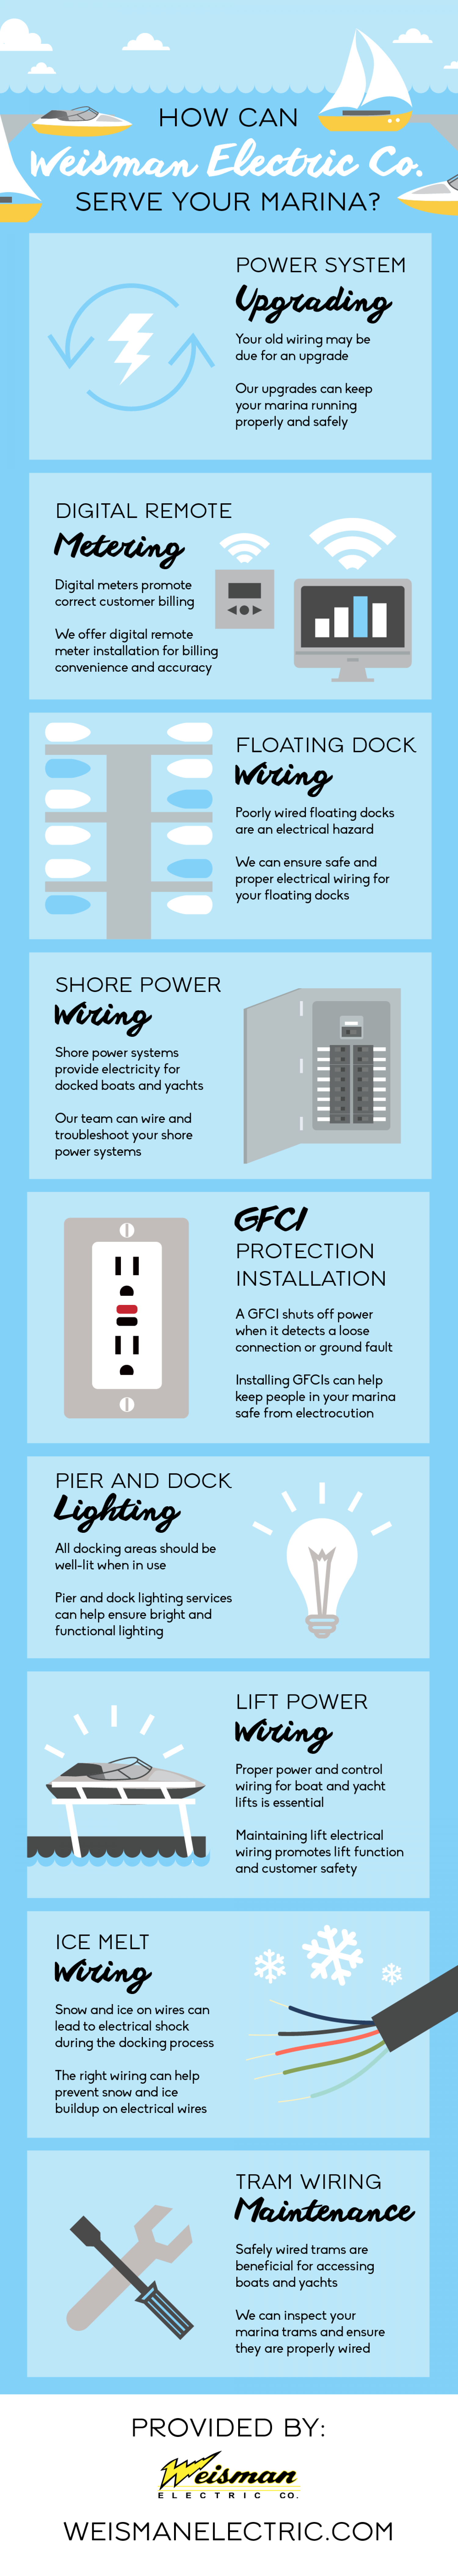 How Can Weisman Electric Co. Serve Your Marina? Infographic